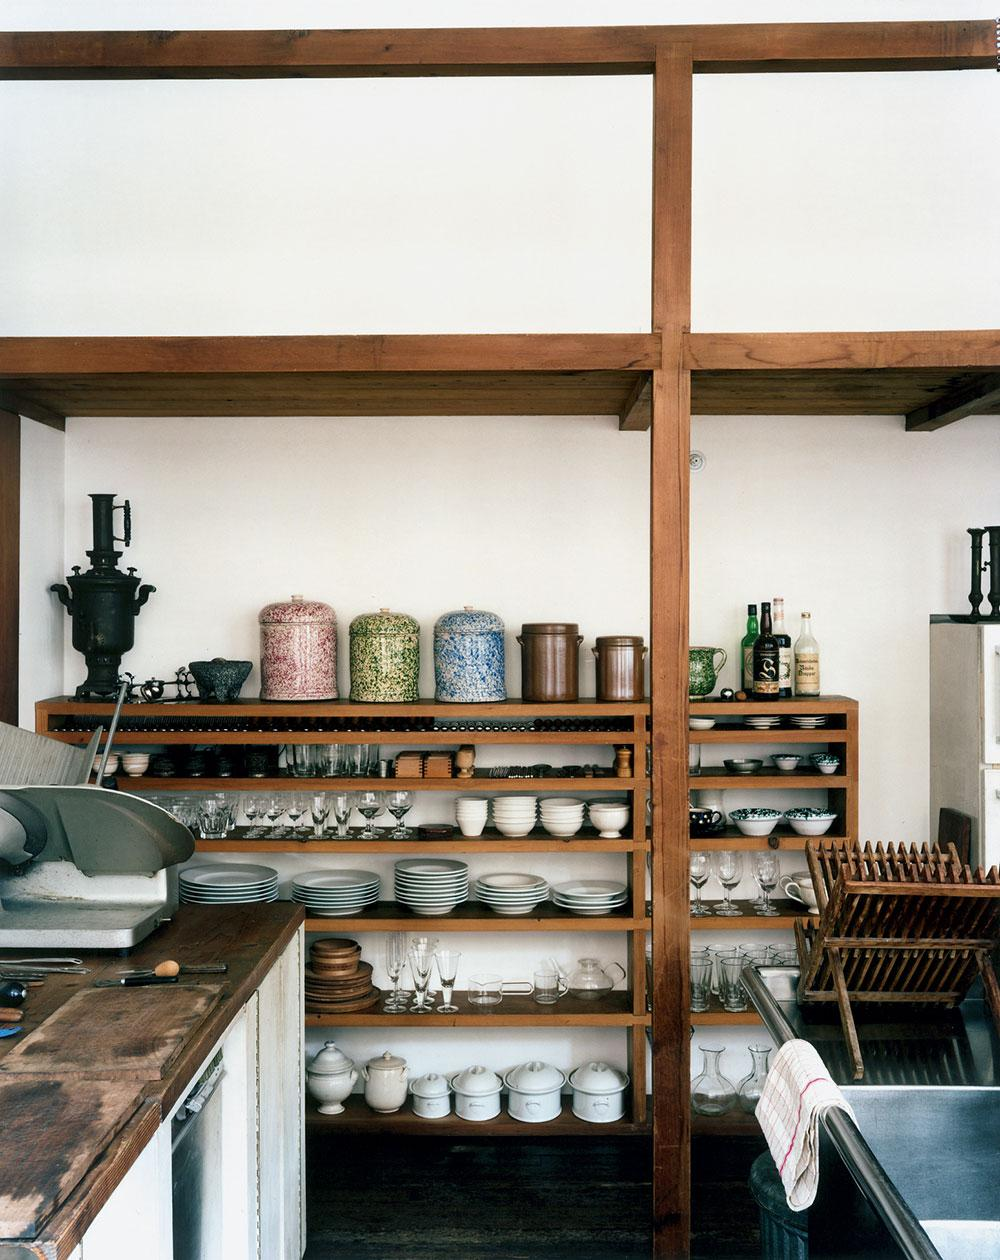 101 Spring Street kitchen by Donald Judd